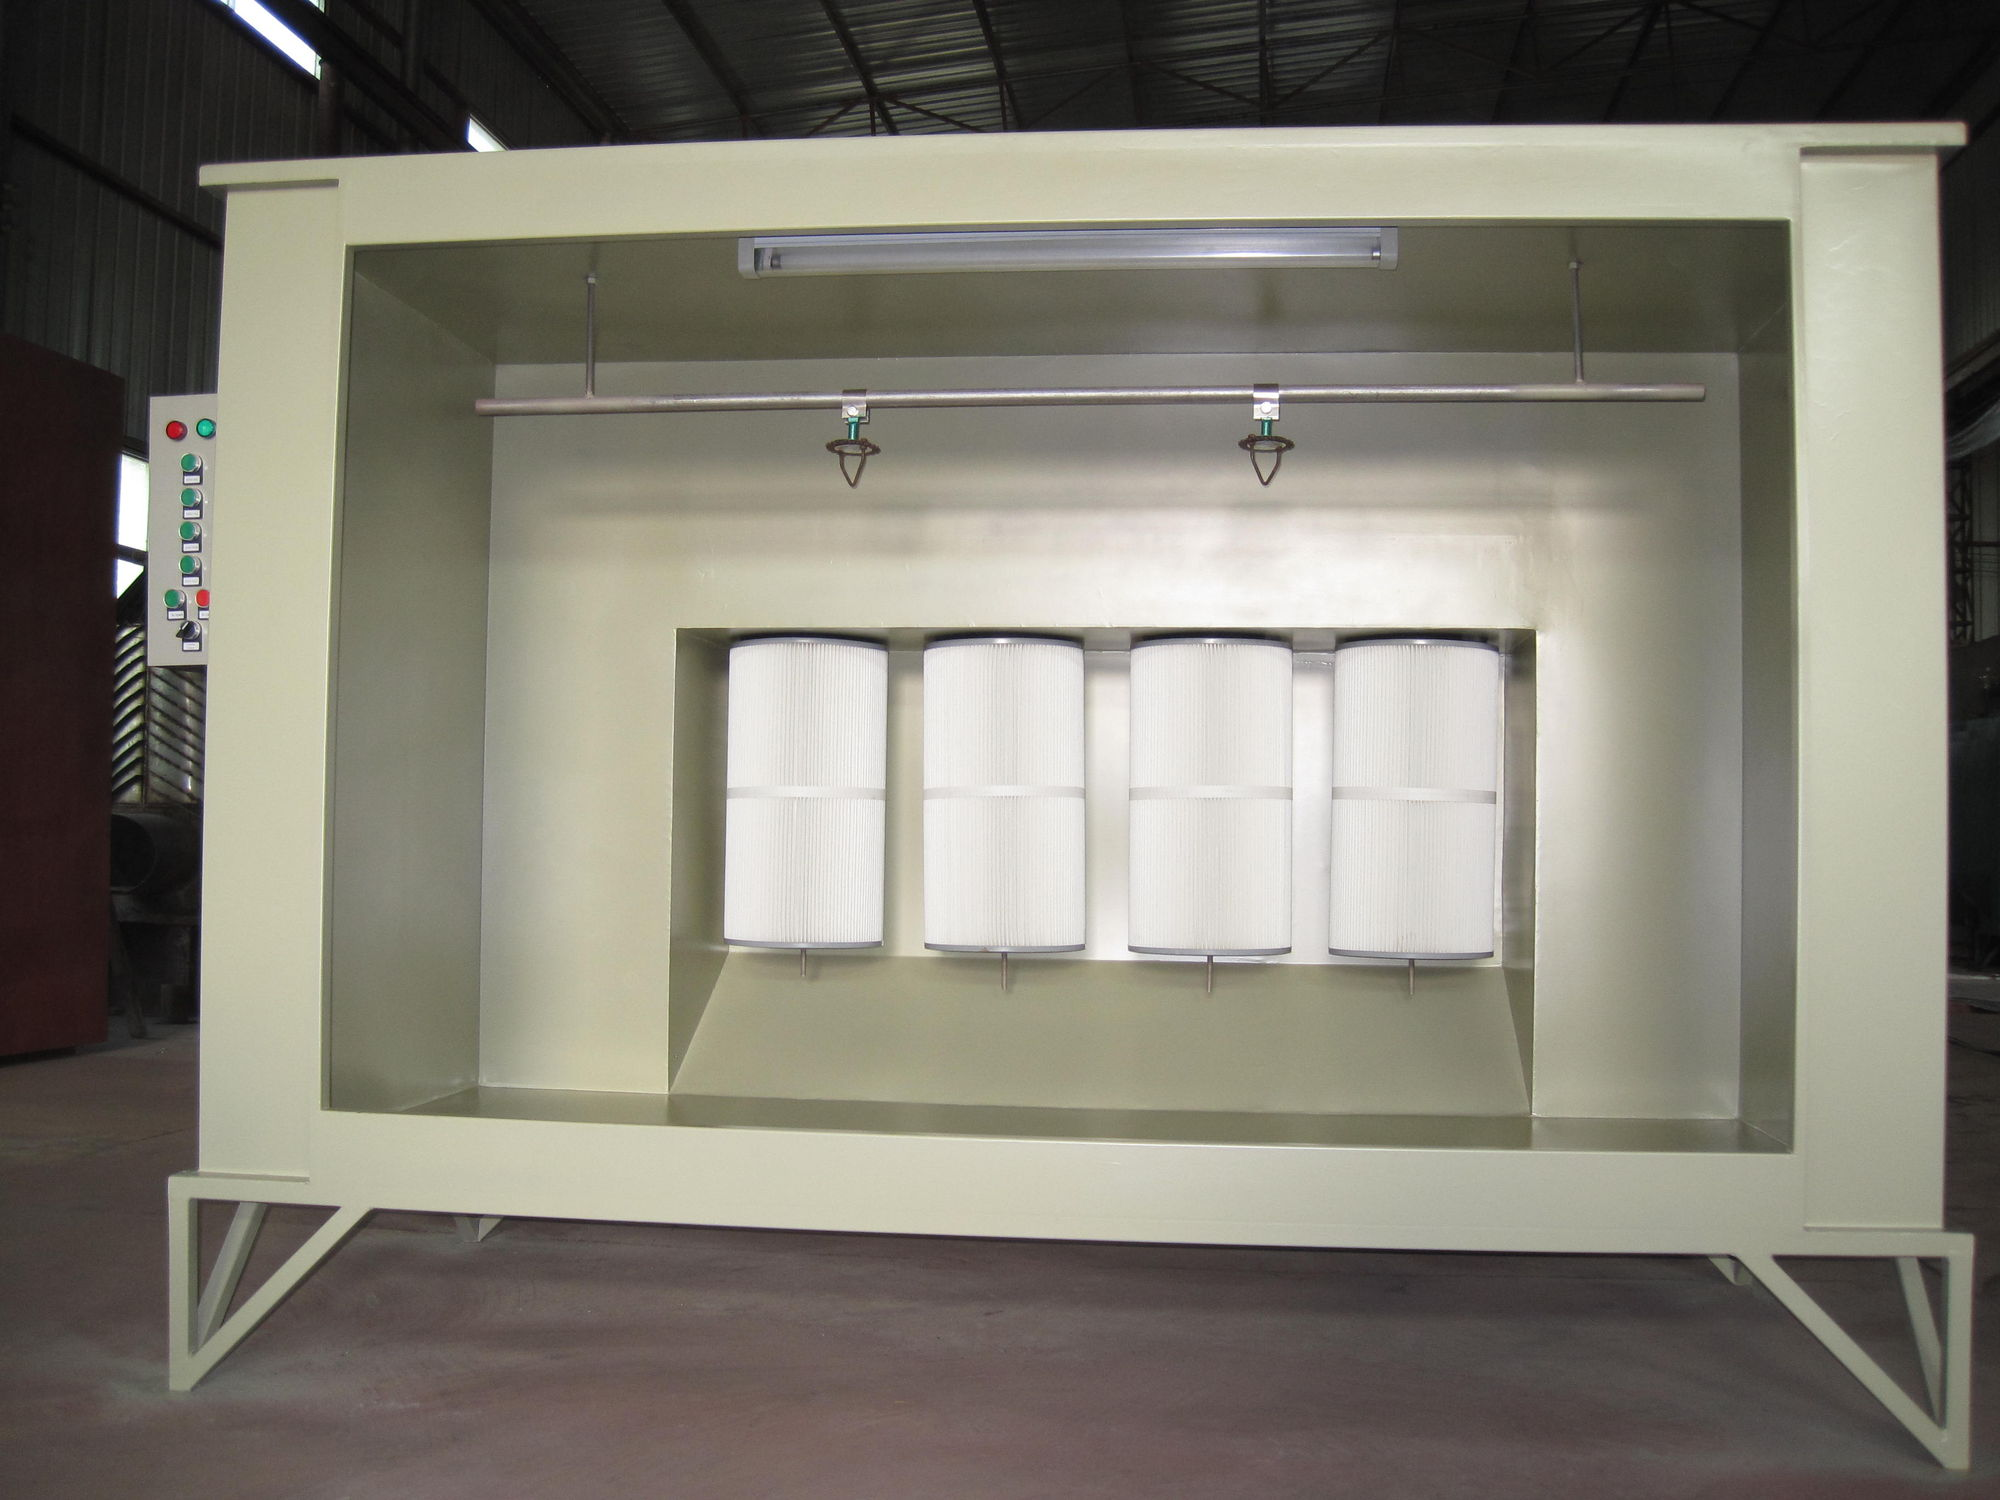 Manual powder coating booth electron videos.